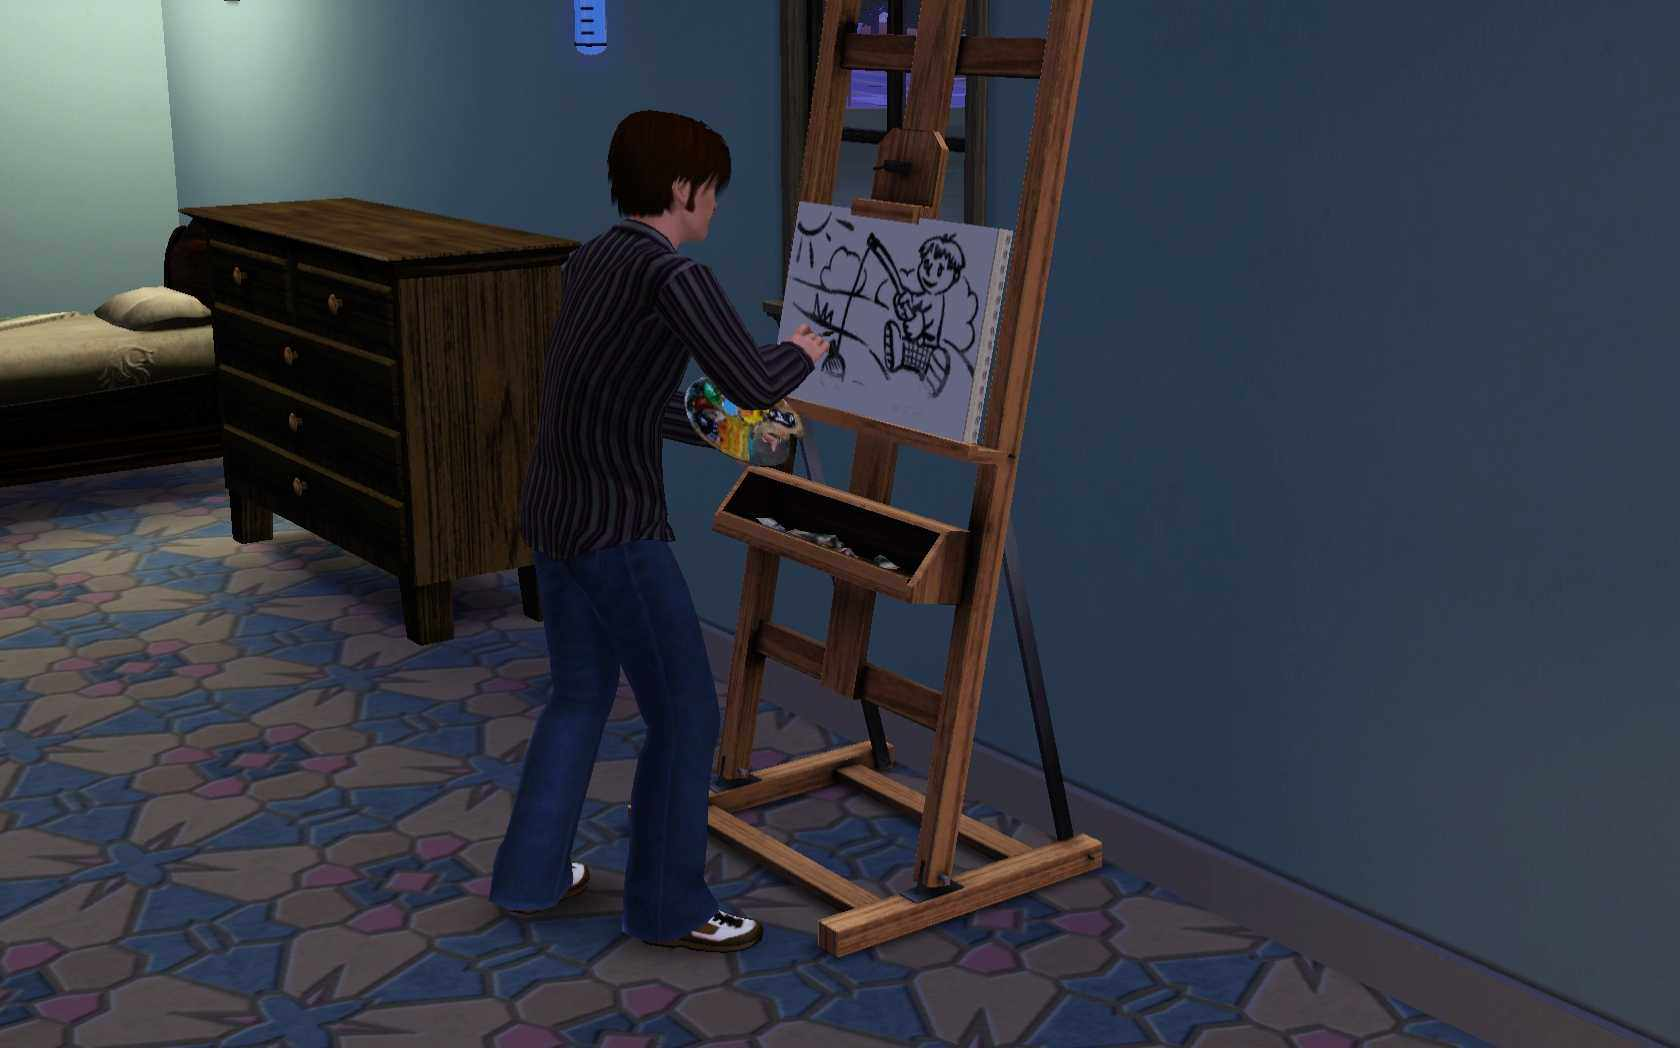 The Sims 3 Painting Skill Guide